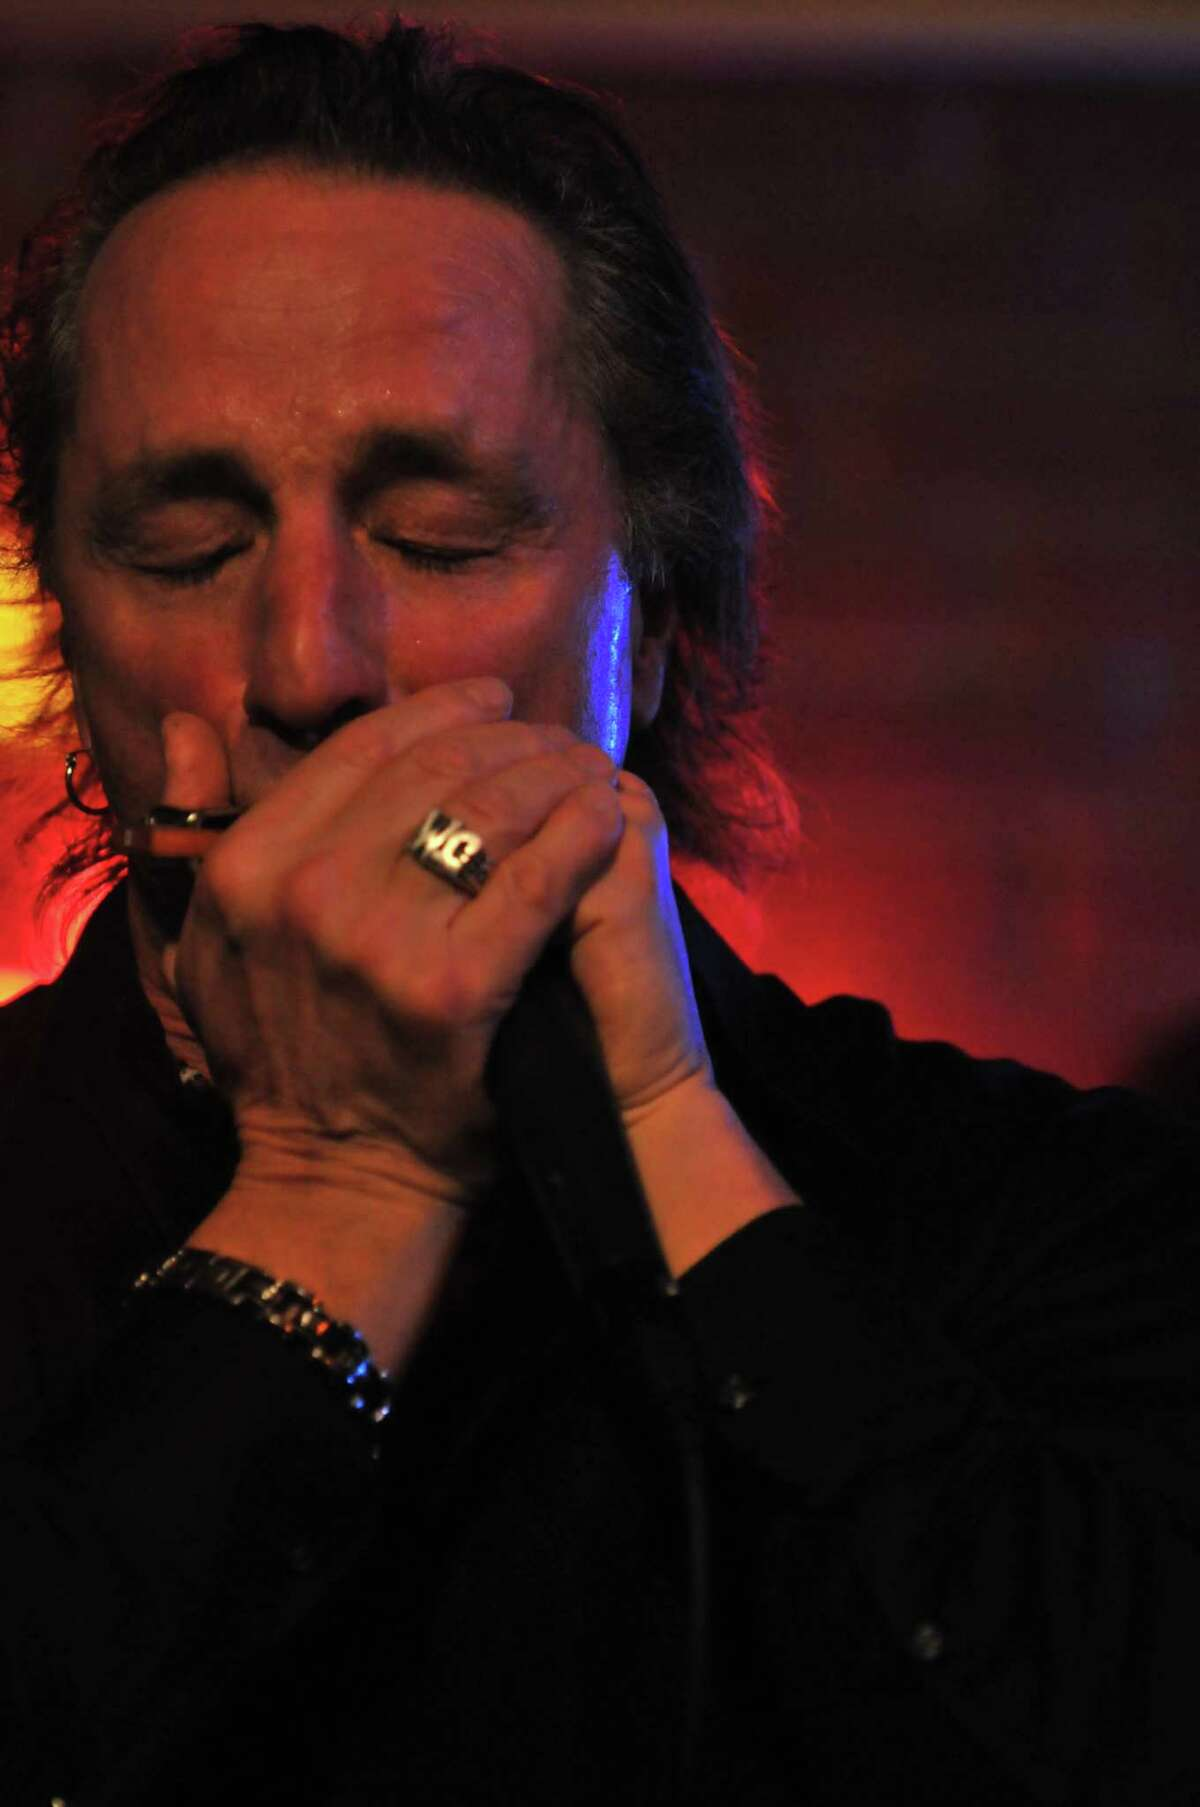 New England blues musician extraordinaire James Montgomery and his band are performing Sept. 3 at Bridge Street Live.